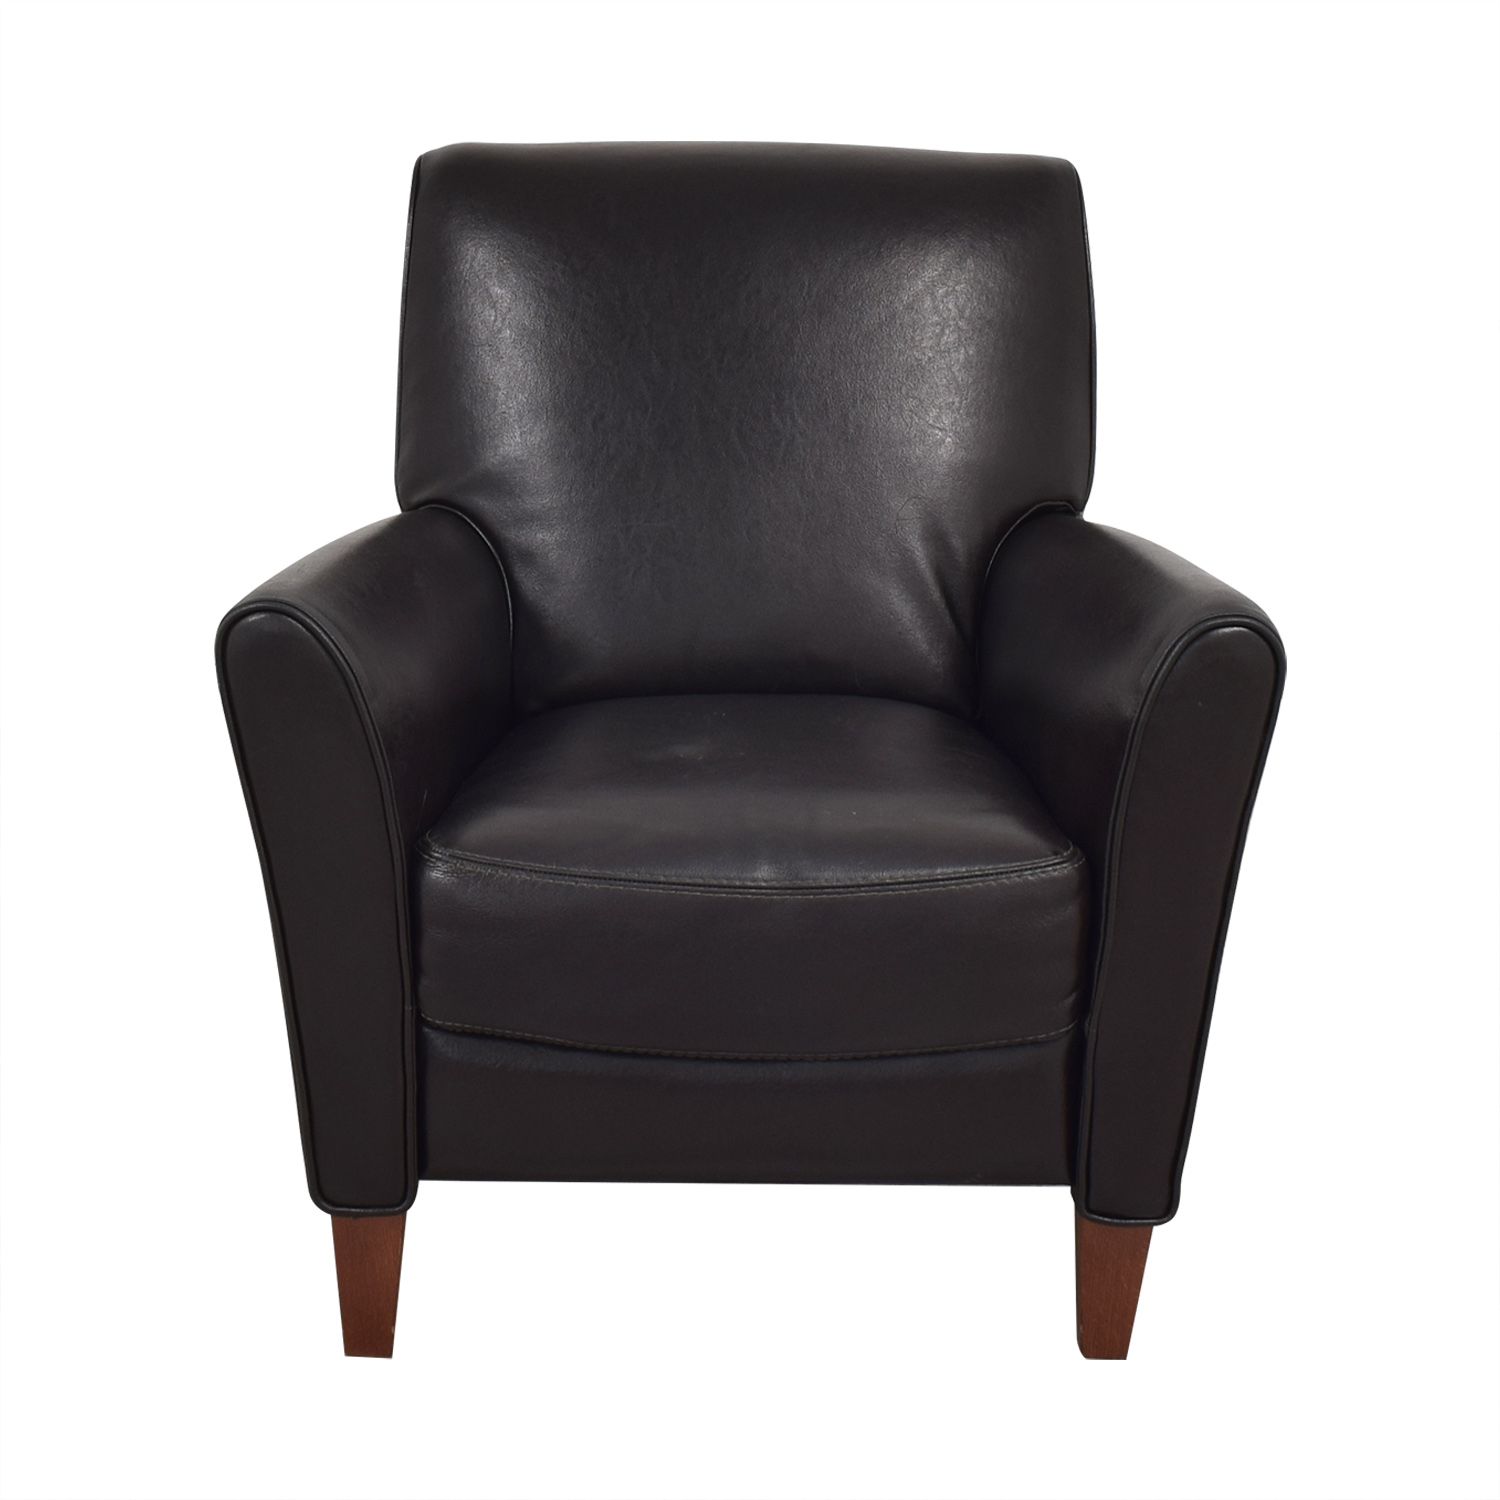 Calia Italia Calia Italia Eleanor Arm Chair dimensions